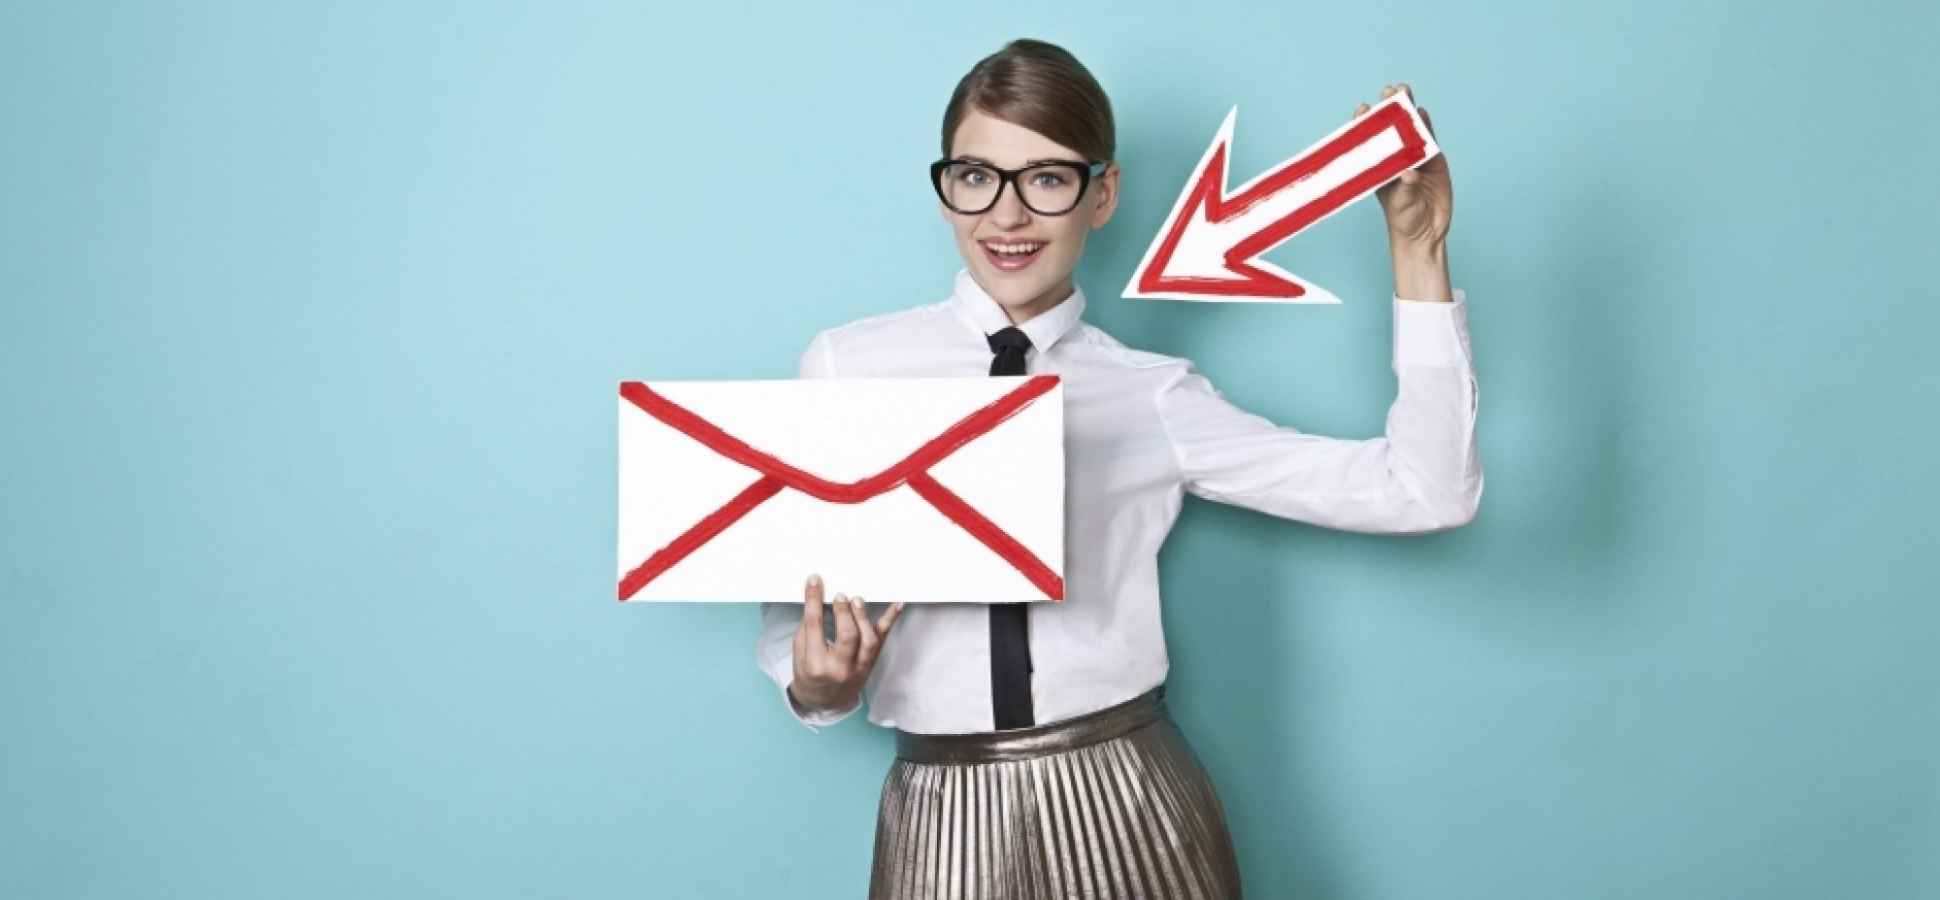 7 Smart Hacks for Your Email Marketing Strategy